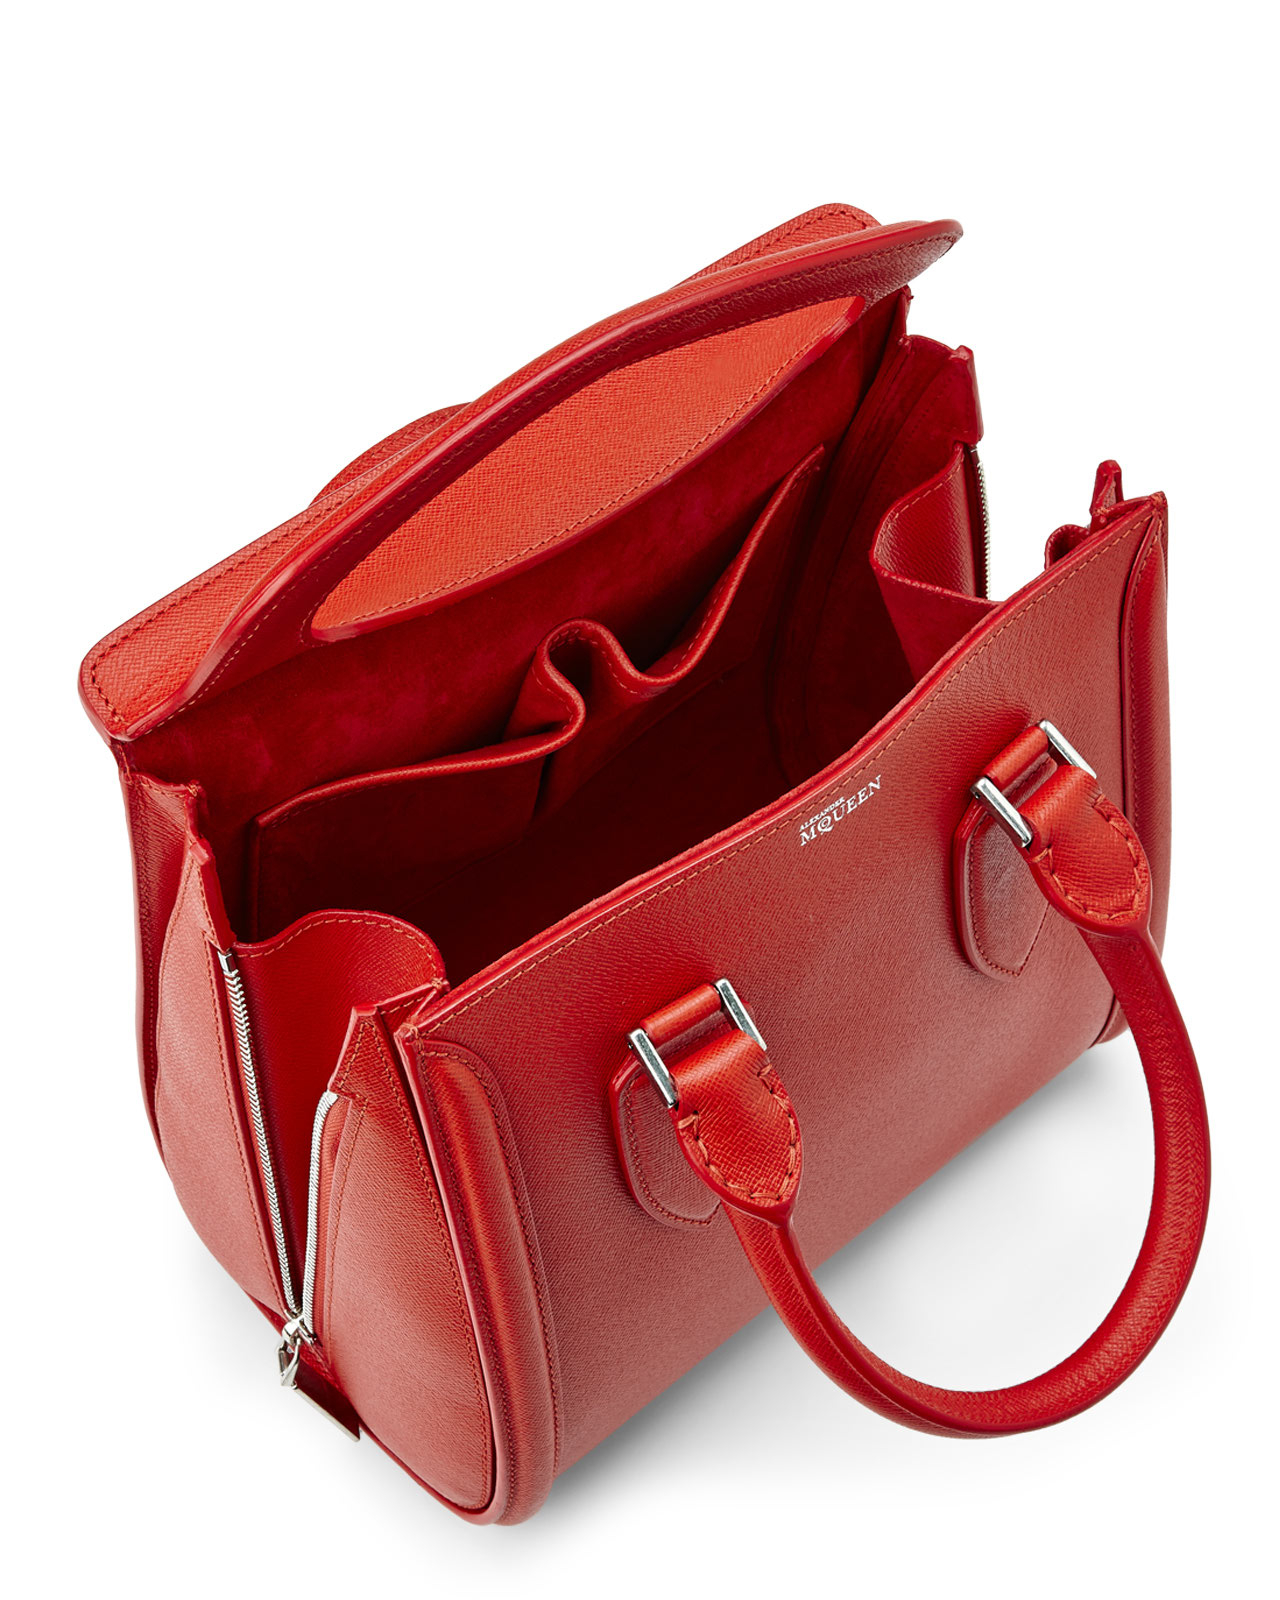 e45b57e56a45f Alexander McQueen Red Heroine Satchel in Red - Lyst